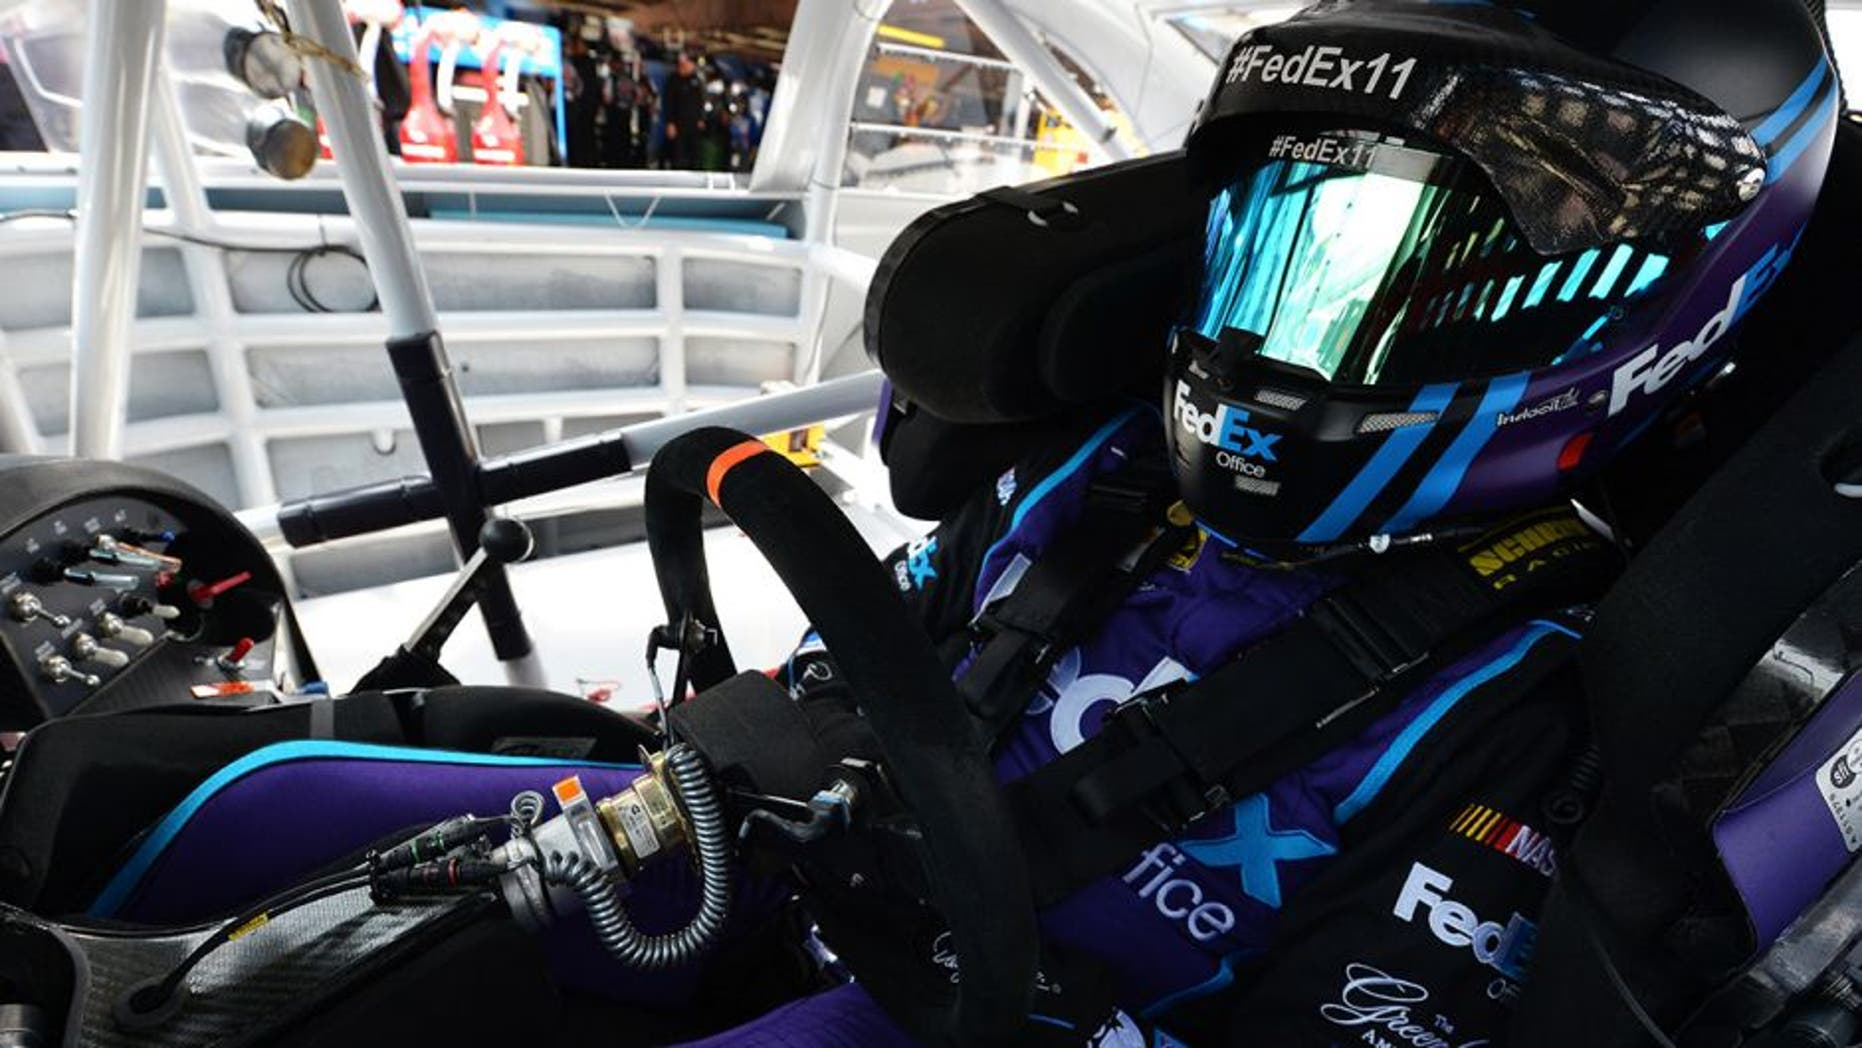 DOVER, DE - MAY 14: Denny Hamlin, driver of the #11 FedEx Office Toyota, sits in his car during practice for the NASCAR Sprint Cup AAA 400 Drive For Autism at Dover International Speedway on May 14, 2016 in Dover, Delaware. (Photo by Drew Hallowell/NASCAR via Getty Images)